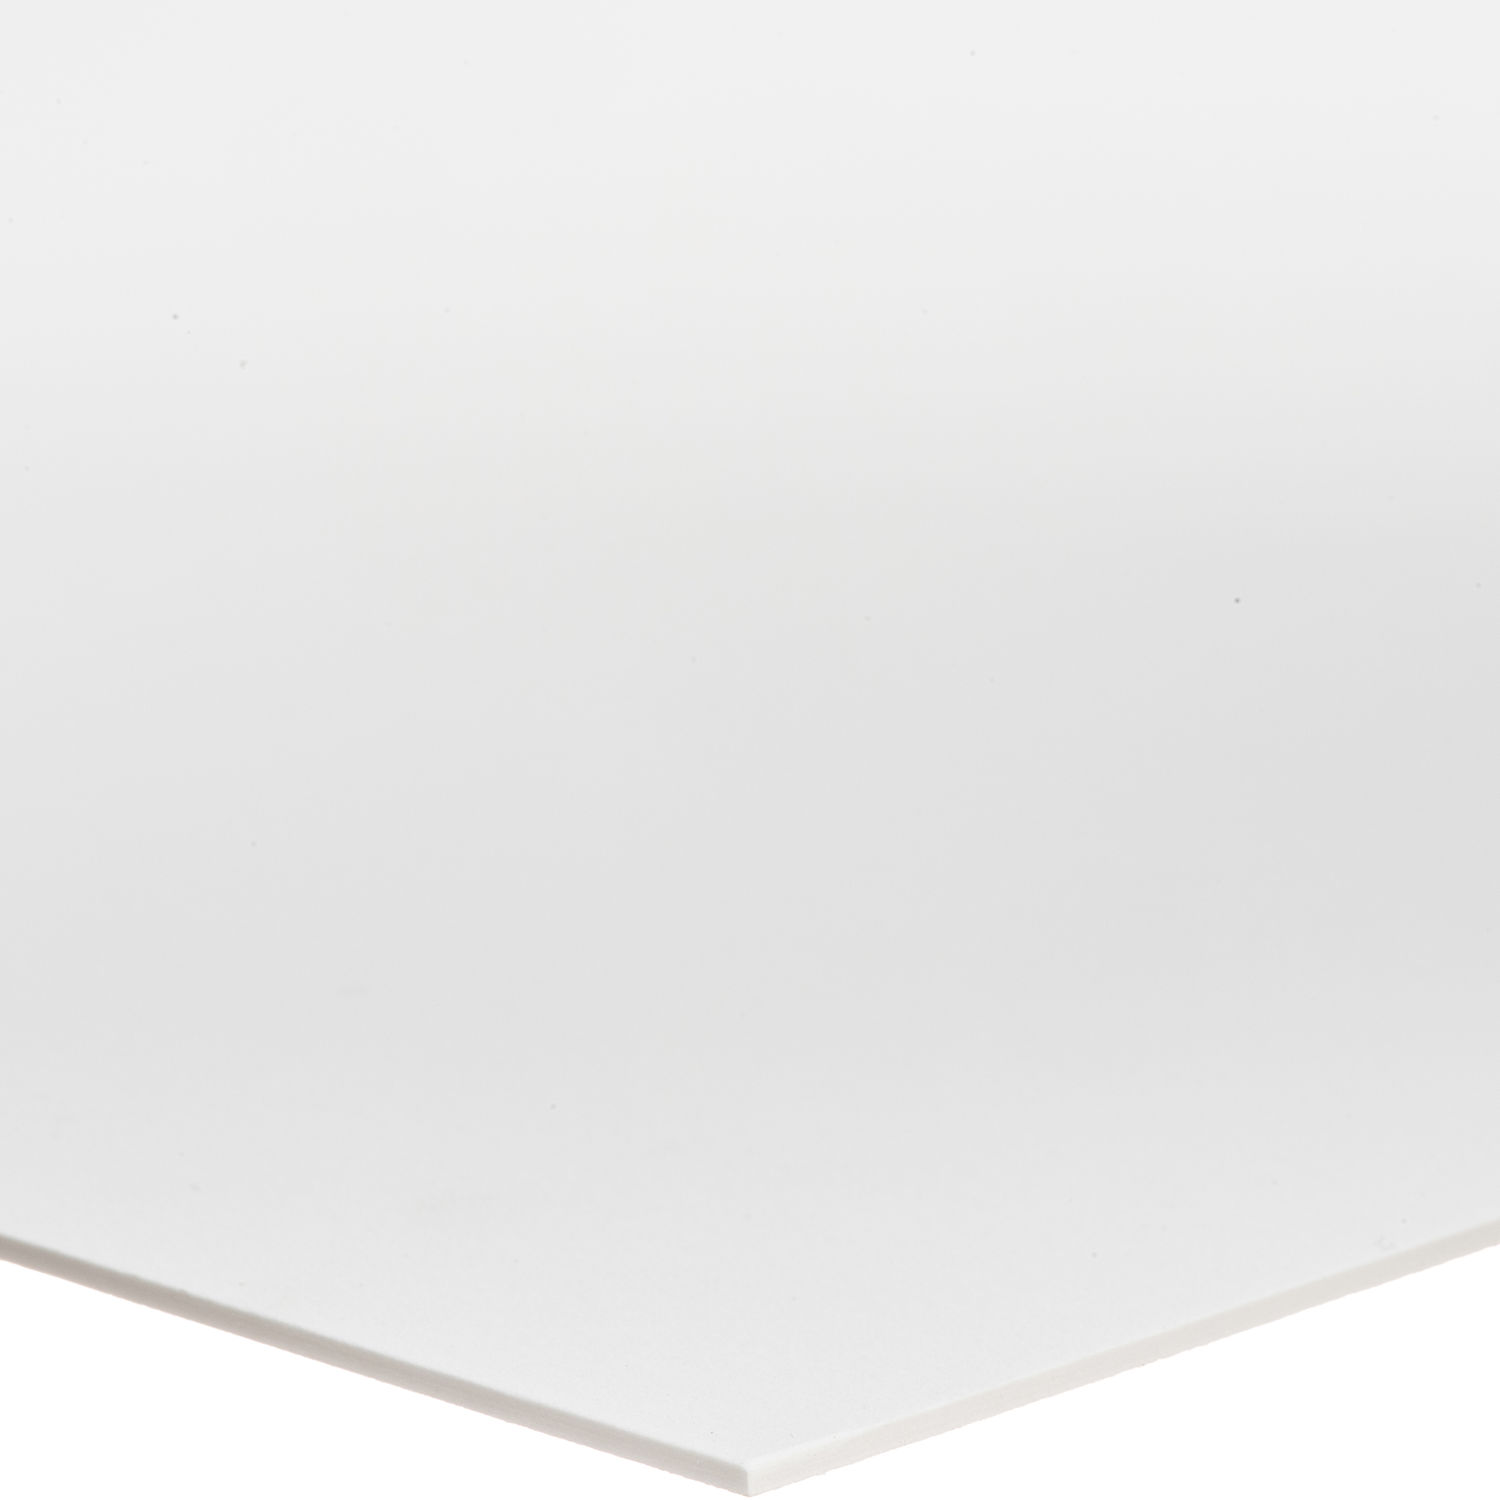 Archival Methods 100/% Cotton Museum Board 4 Ply Bright White Package of 5 16x20